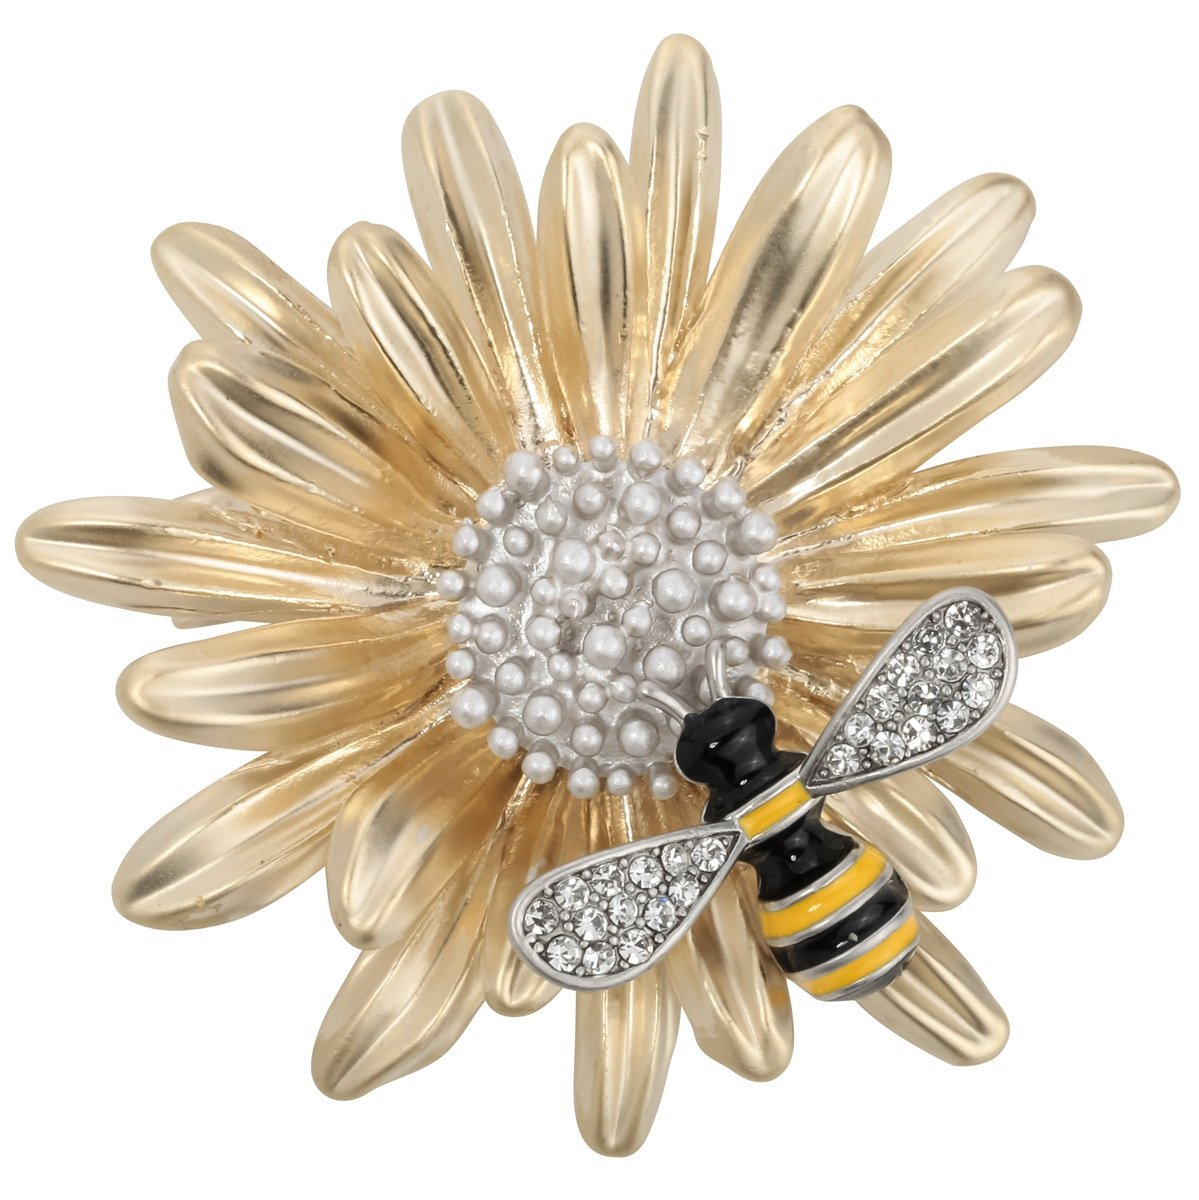 Szxc Jewelry Sun Flower Enamel Bee Insect Series Brooch Pin Accessories For Her Women (Yellow)